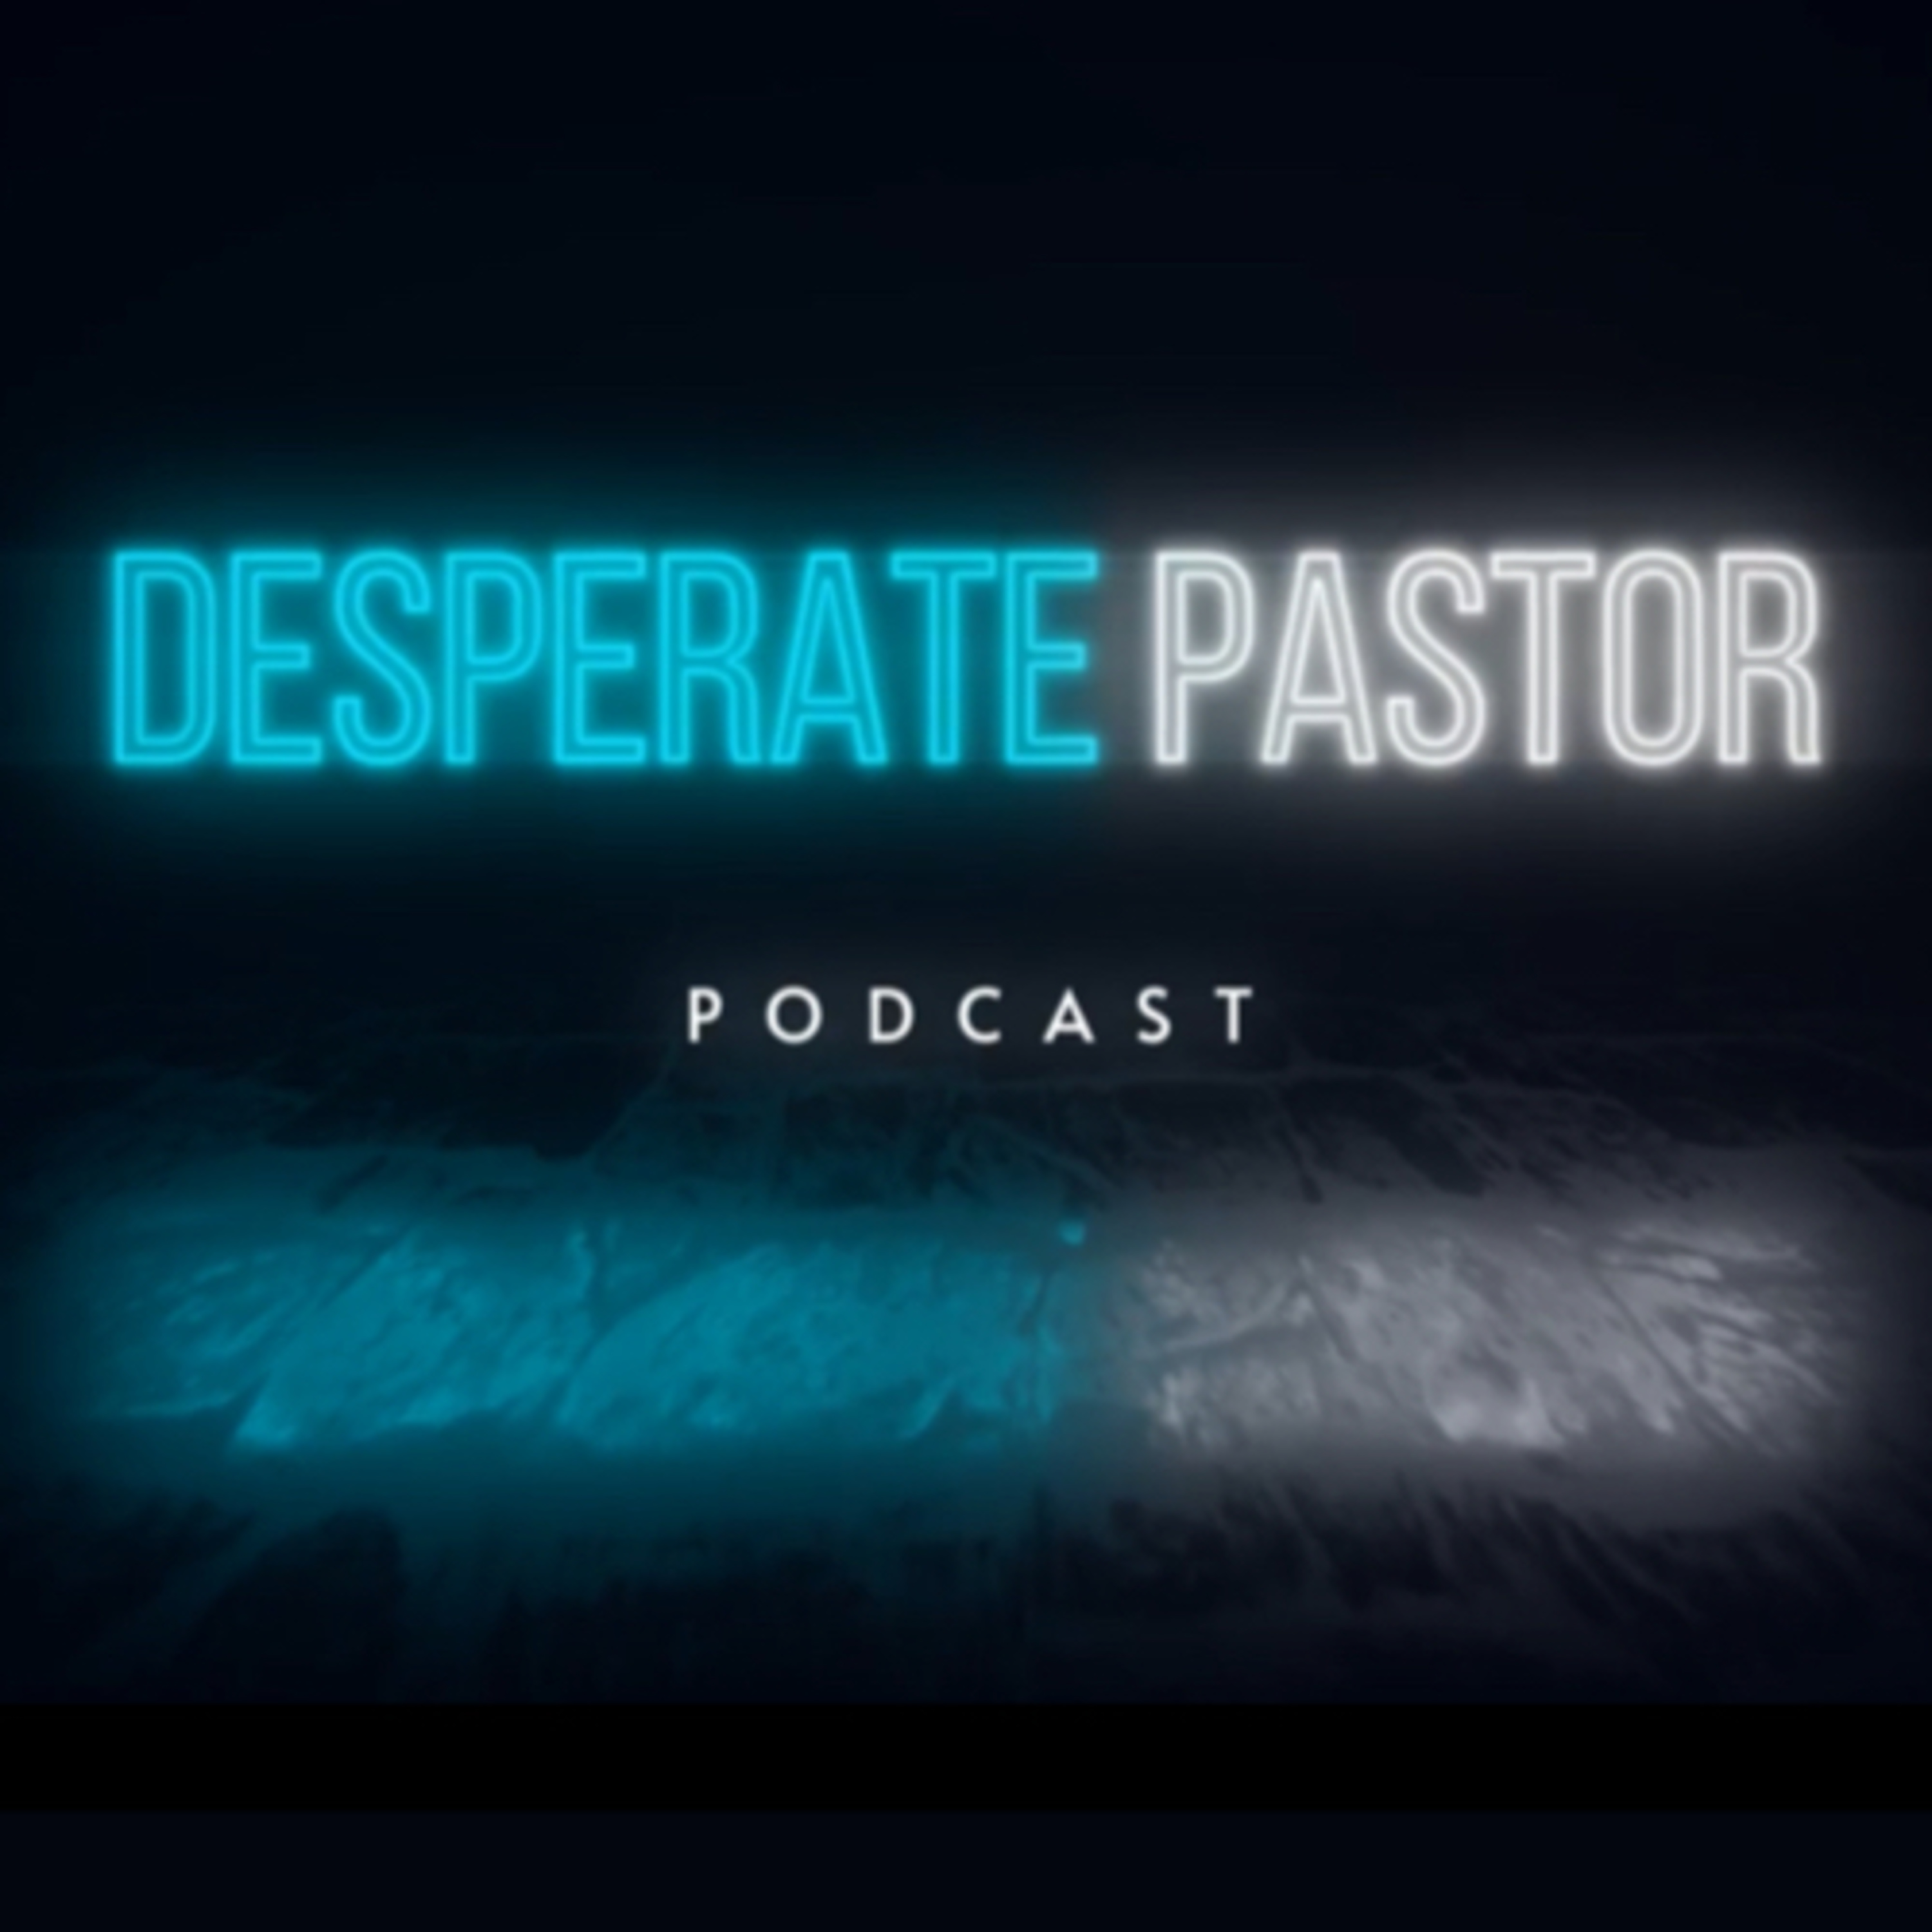 Episode 14 - Following Jesus in Difficult Times